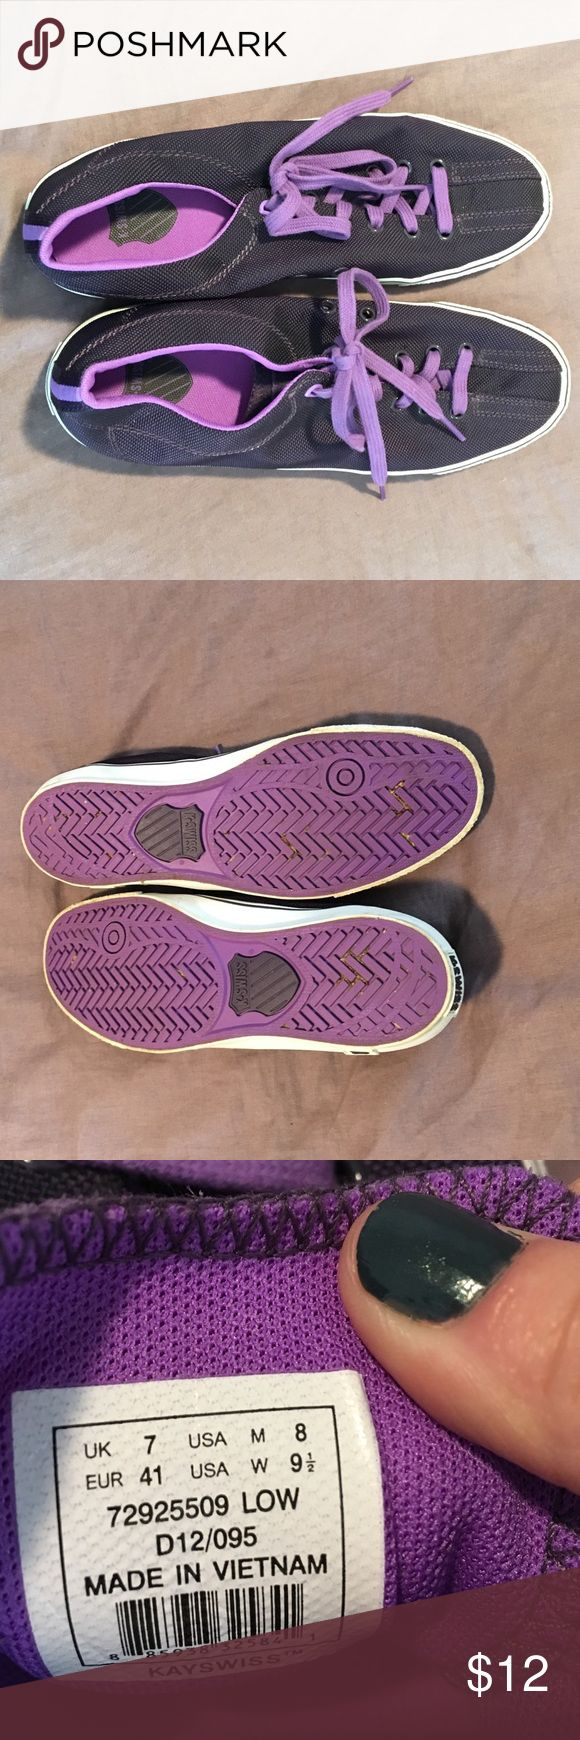 K-Swiss purple tennis shoes size 9.5 Women's size 9.5 deep purple tennis shoes.  Hardly worn, these have been in storage for a while.  Just want to get rid of these please make an offer K-Swiss Shoes Athletic Shoes